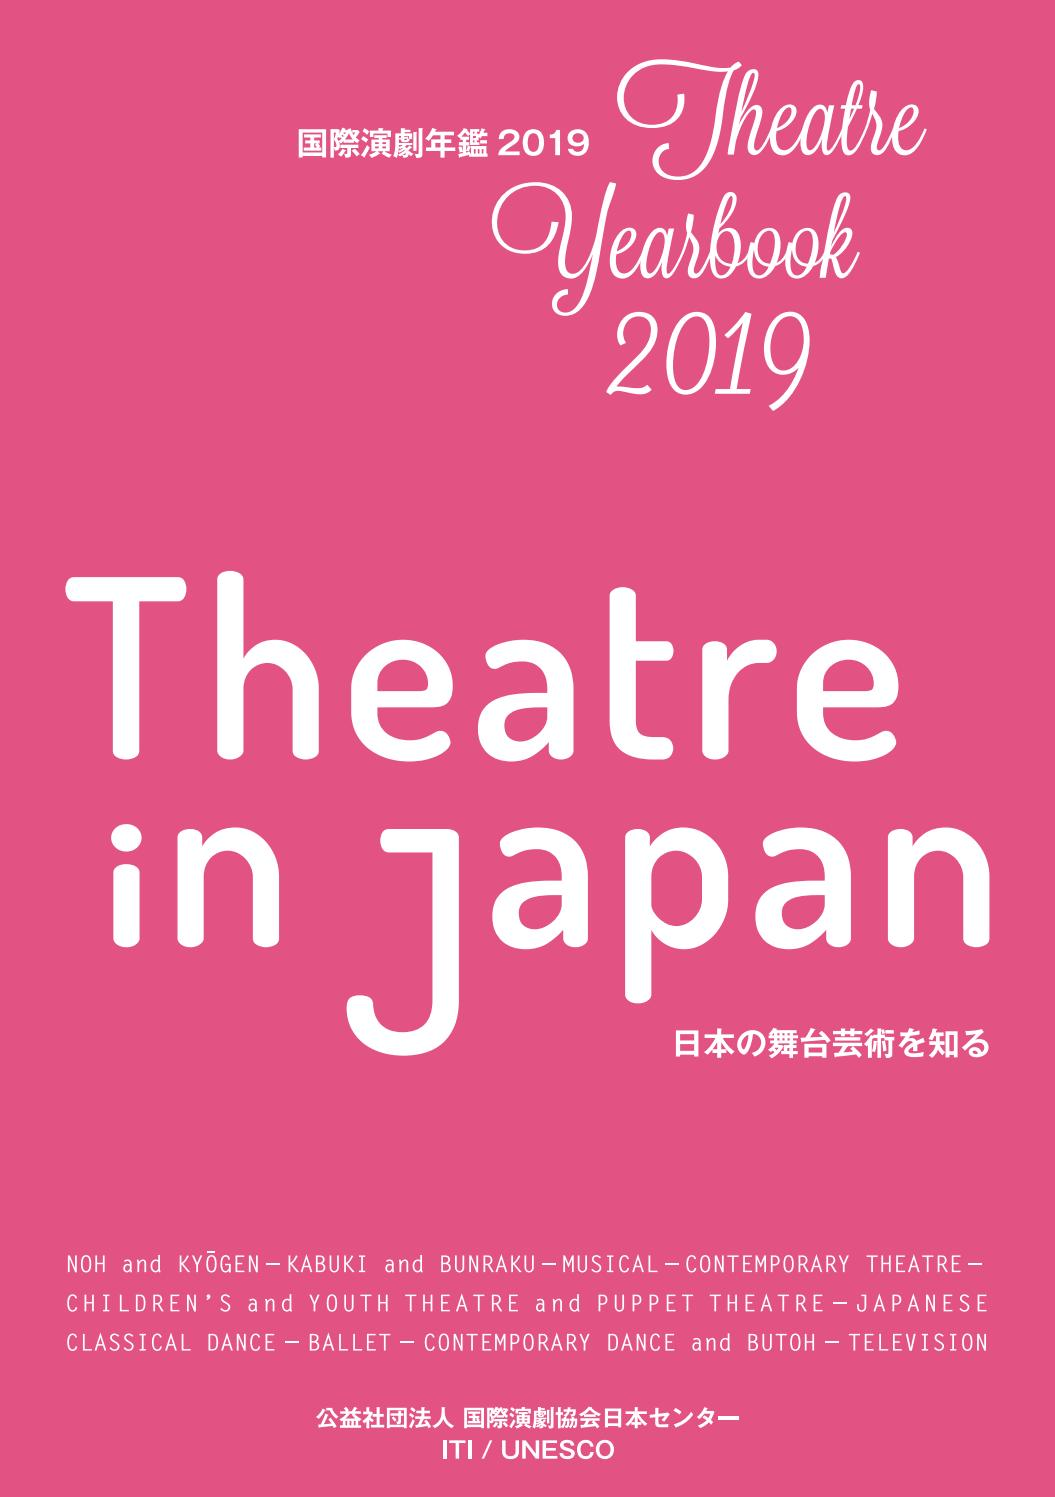 Theatre Yearbook 2019 ― Theatre in Japan by ITI Japanese